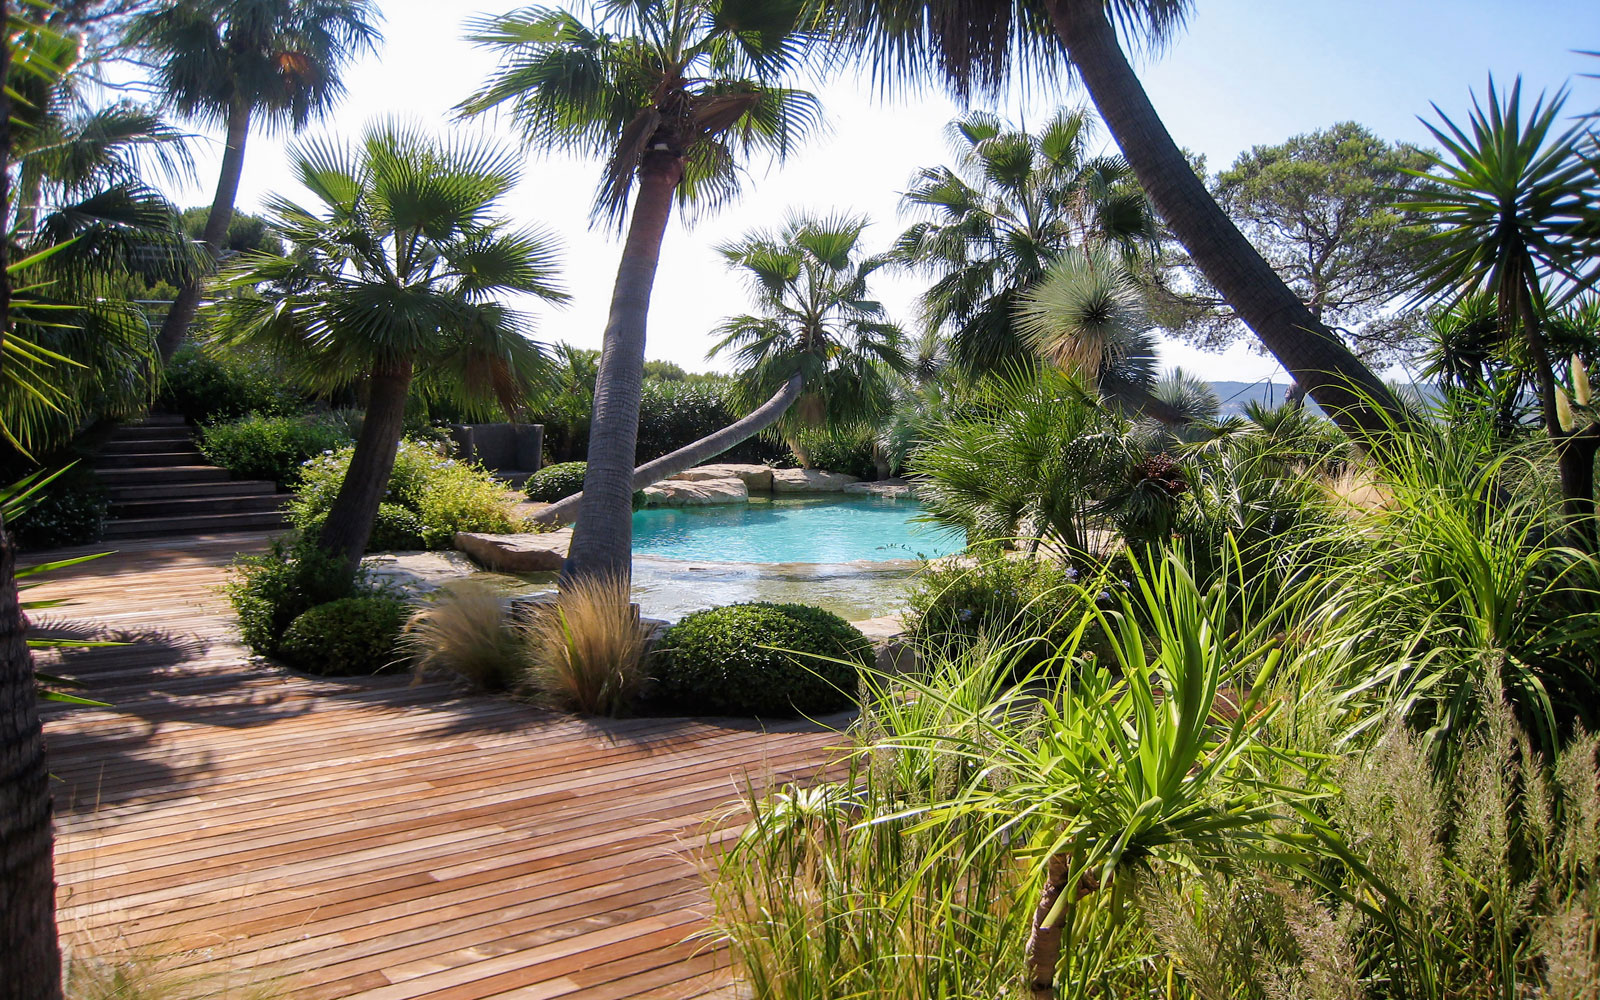 Naturalistic pool and palm trees